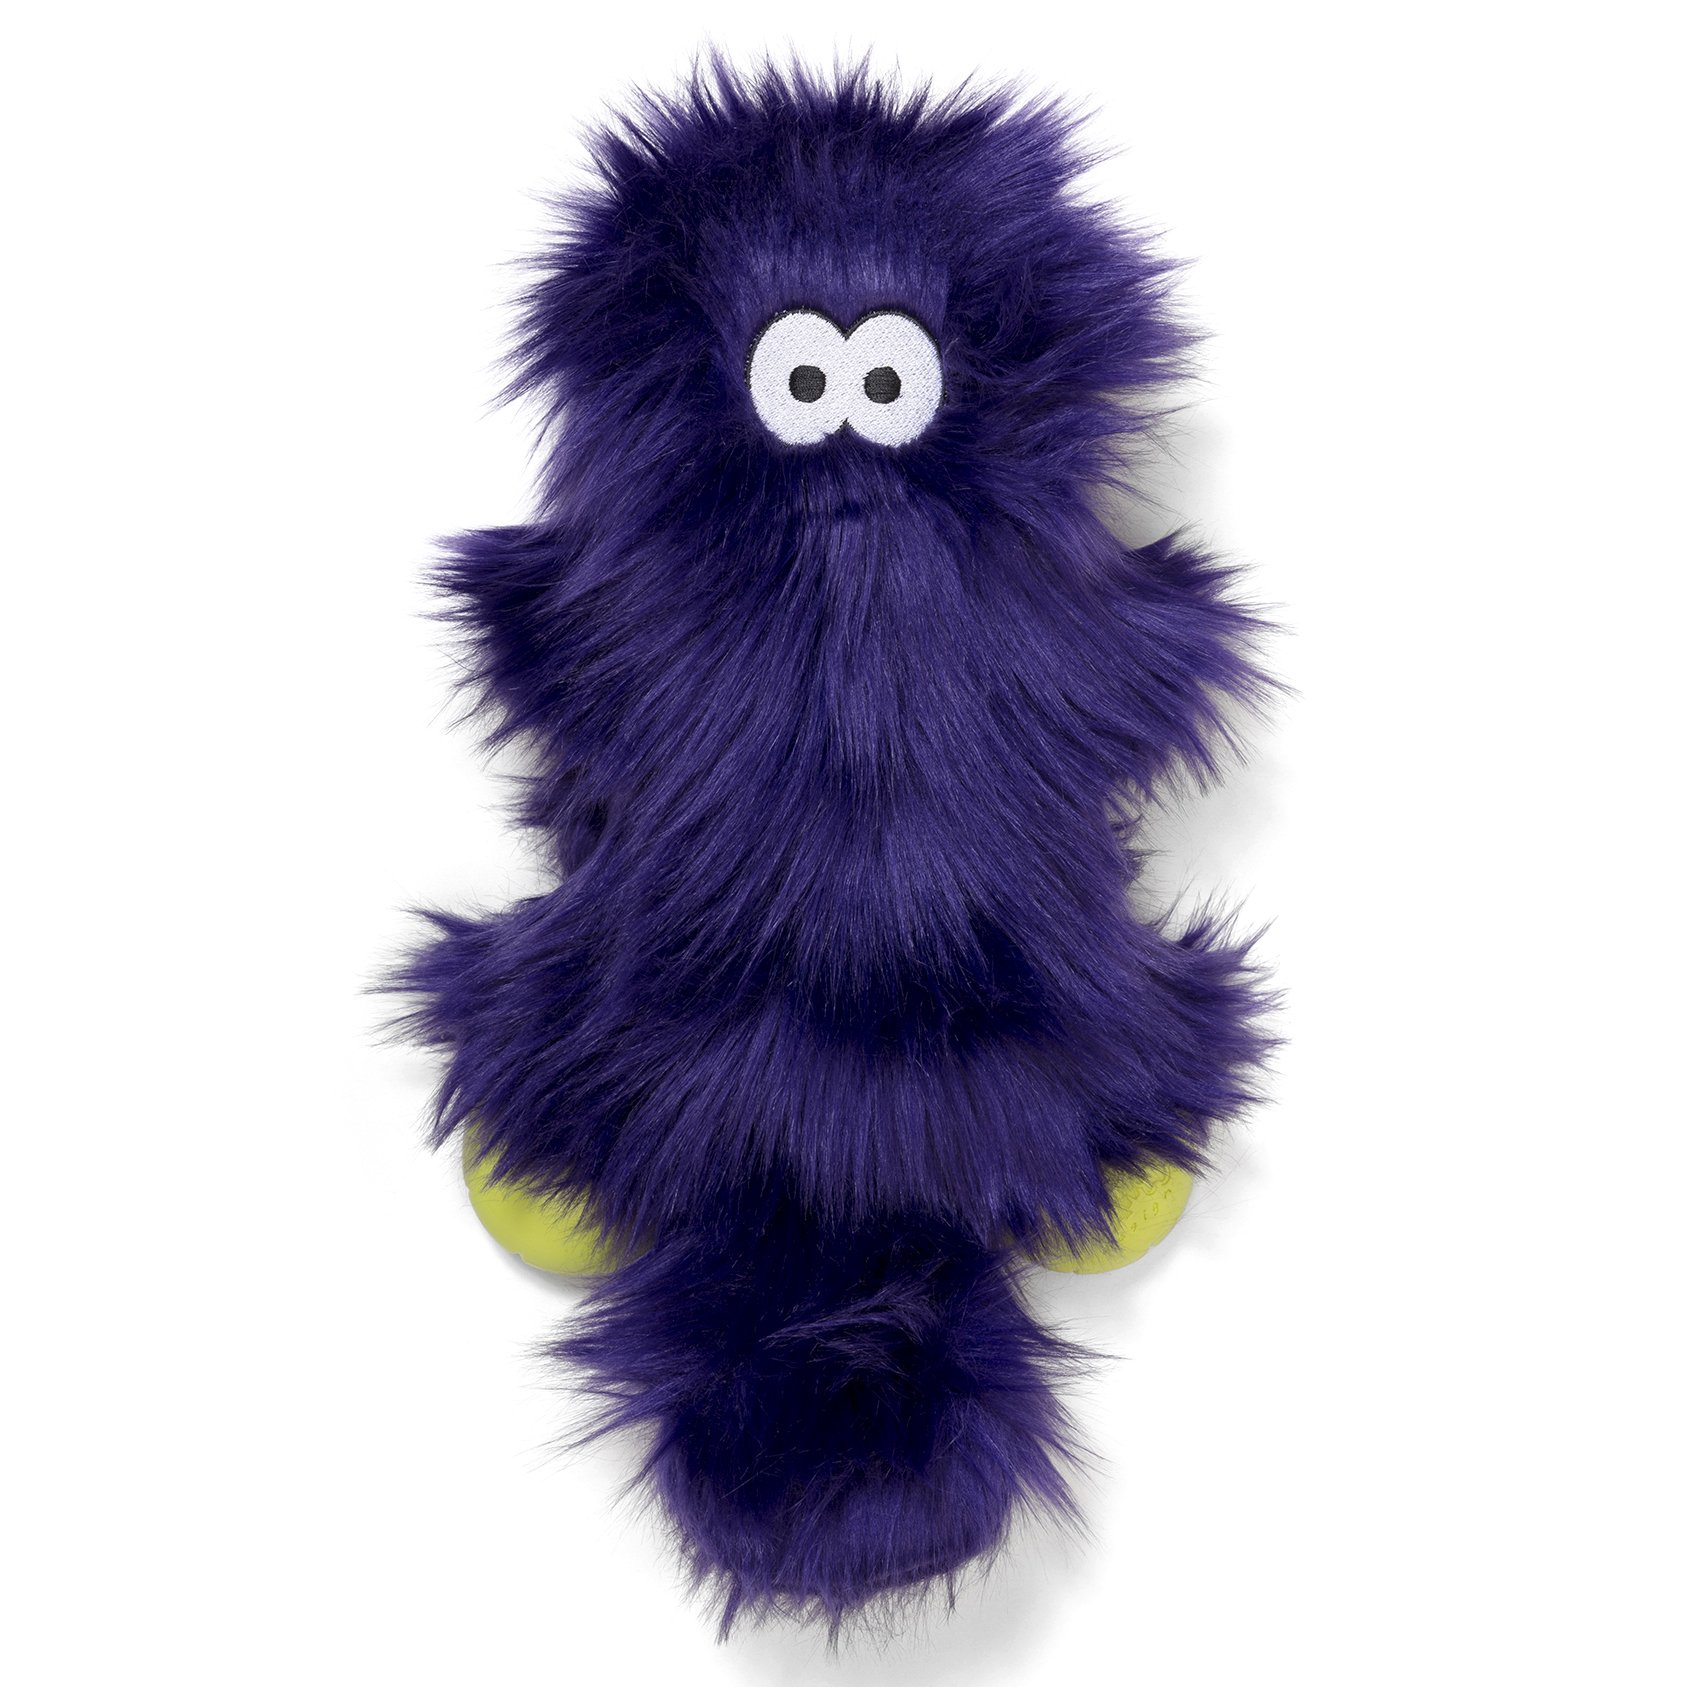 West Paw Rowdies with HardyTex and Zogoflex, Durable Plush Dog Toy for Medium to Large Dogs, Sanders, Purple Fur by West Paw Design